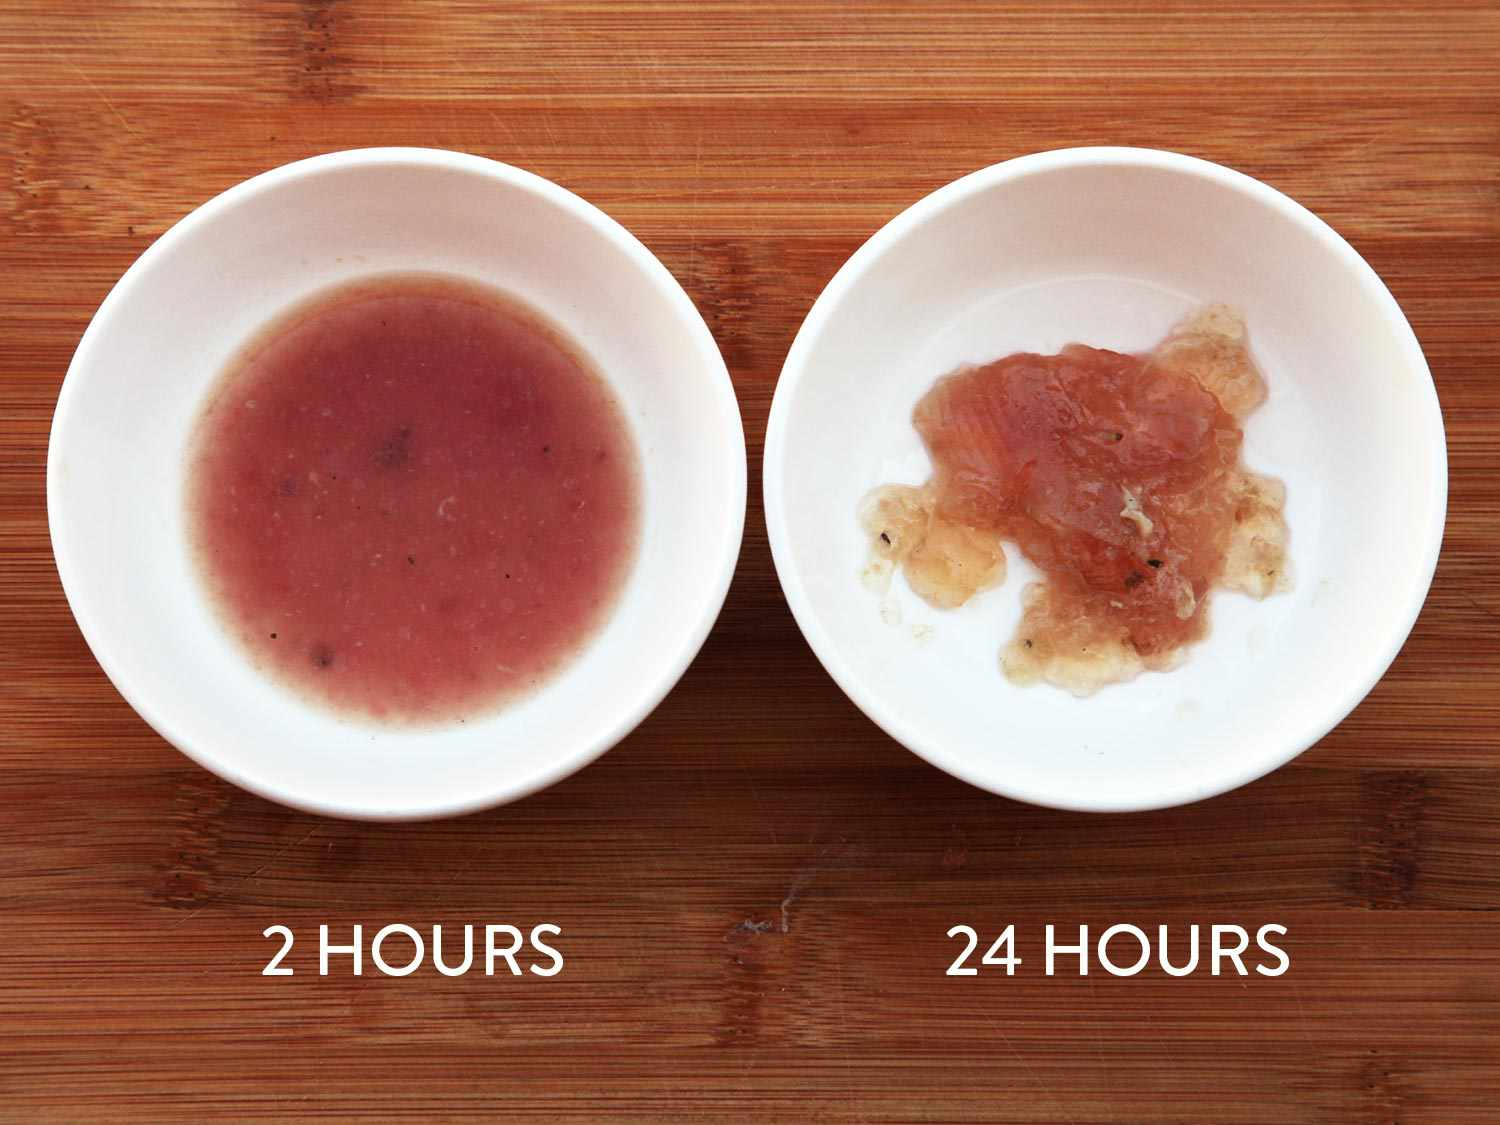 Samples of juice expressed from two batches of sous vide chicken breast, one cooked for two hours and one cooked for 24 hours, both at 145°F